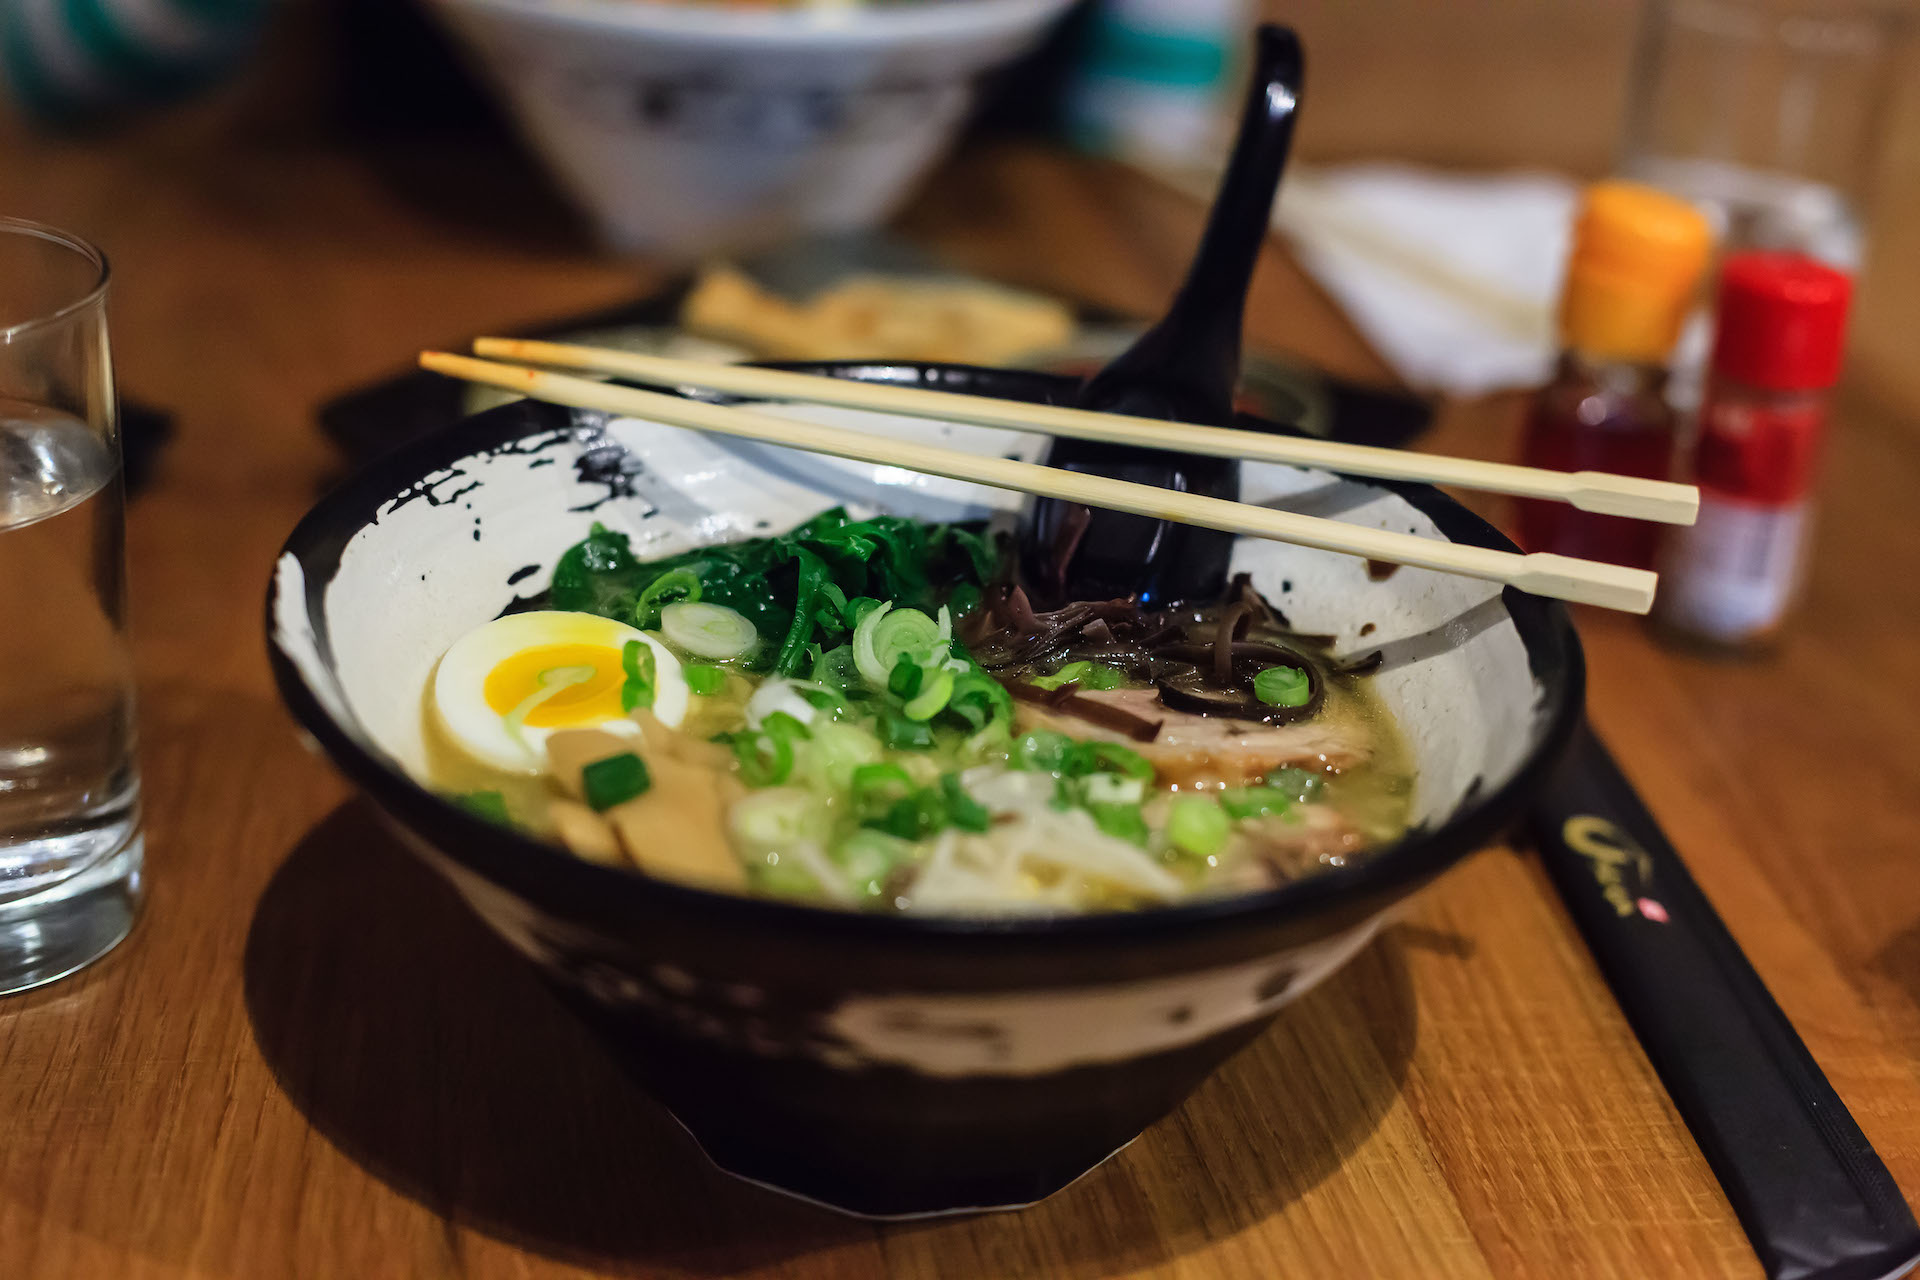 The Tonkotsu ramen is the restaurant's most popular dish.